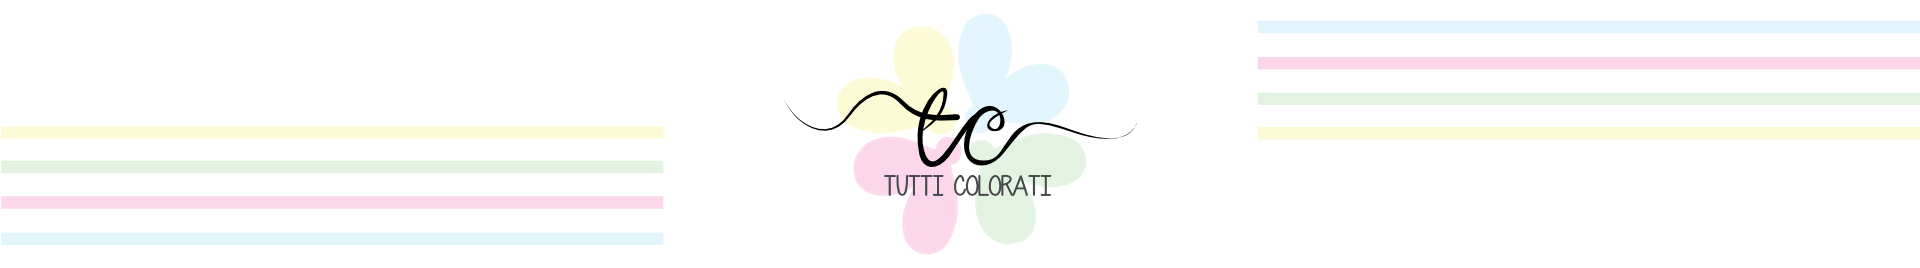 TUTTI COLORATI